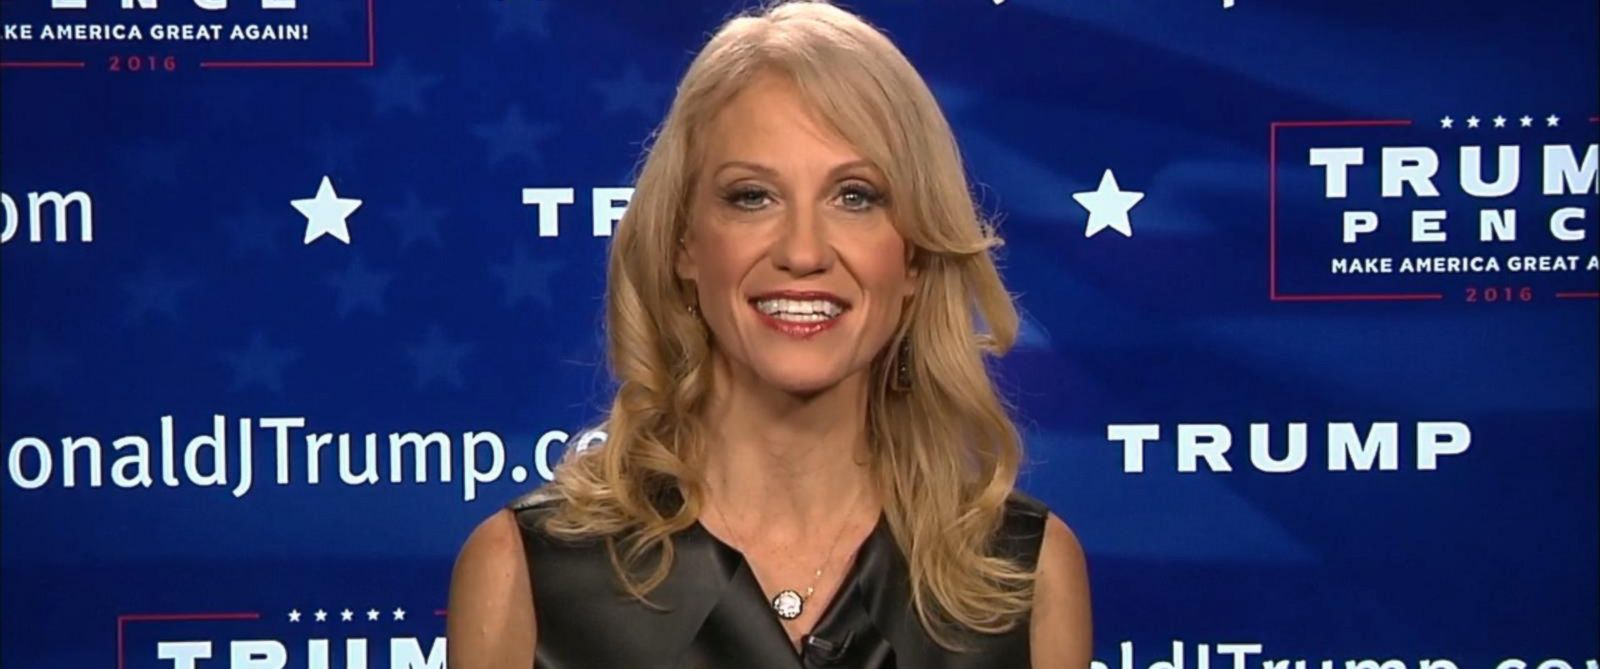 donald trump campaign manager kellyanne conway describes very photo donald trump campaign manager kellyanne conway appeared on good morning america to